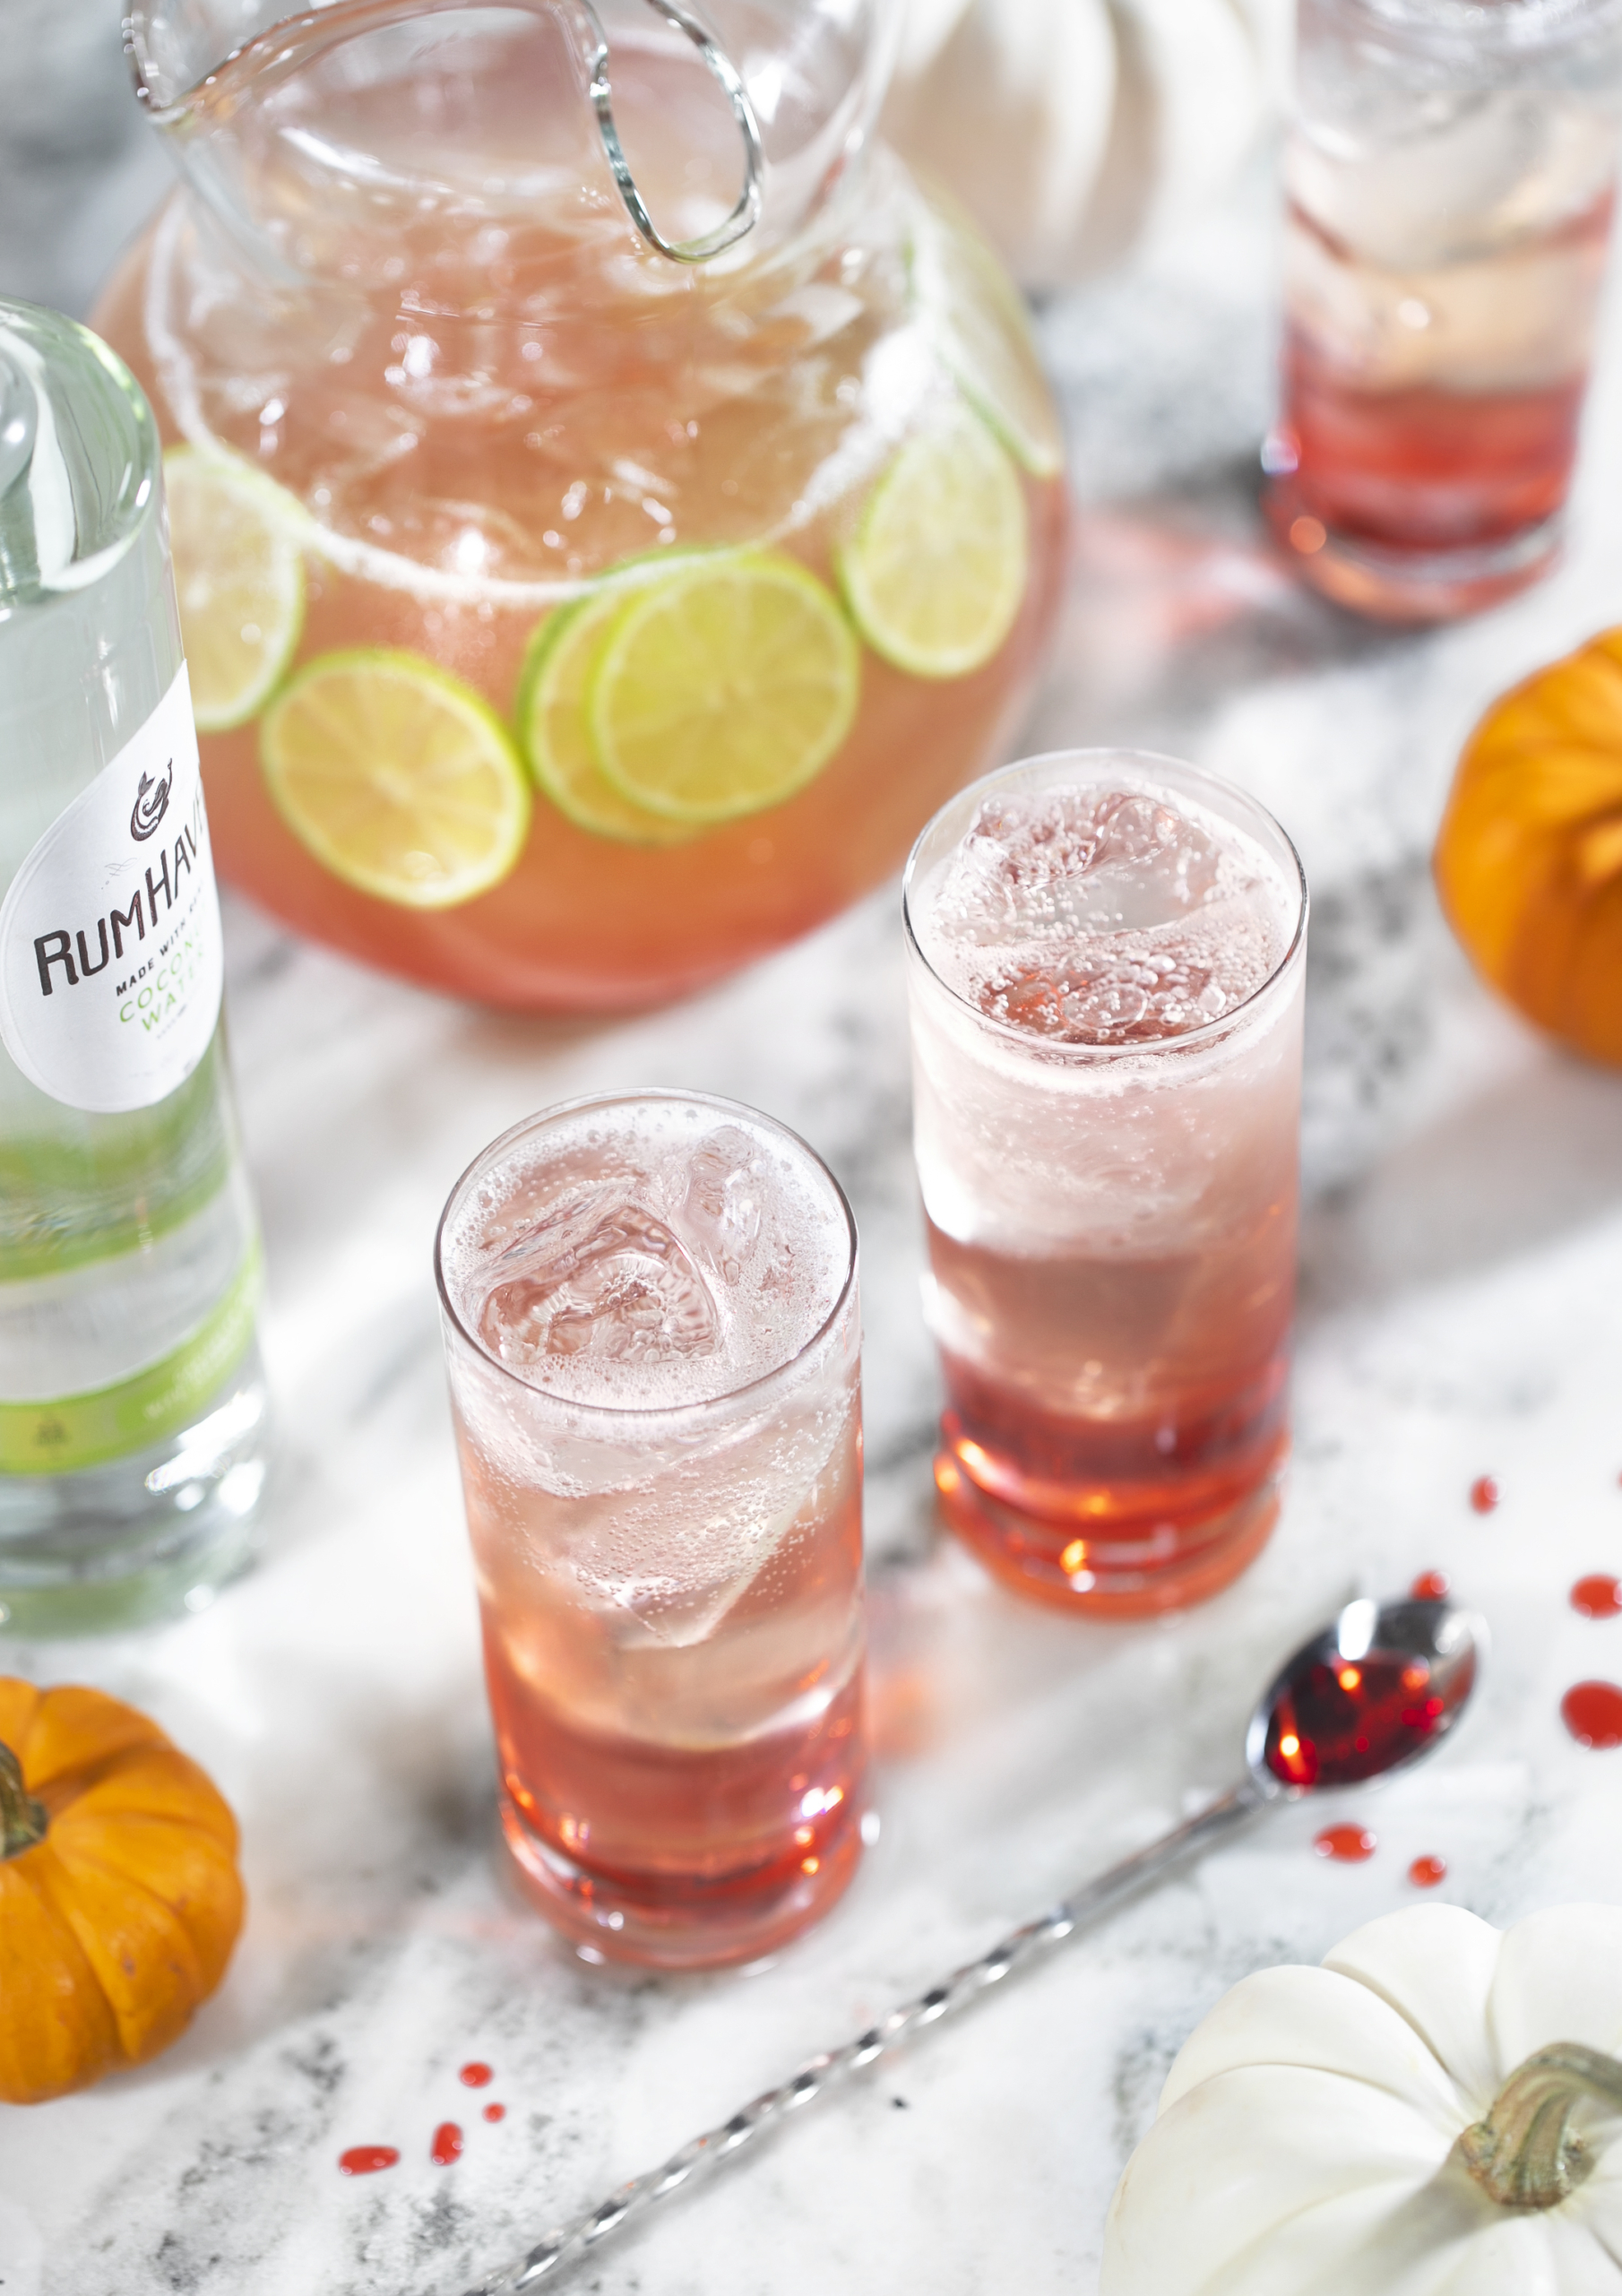 These Halloween Cocktails Are Hauntingly Good To Make At HomeSpellbindingBrew